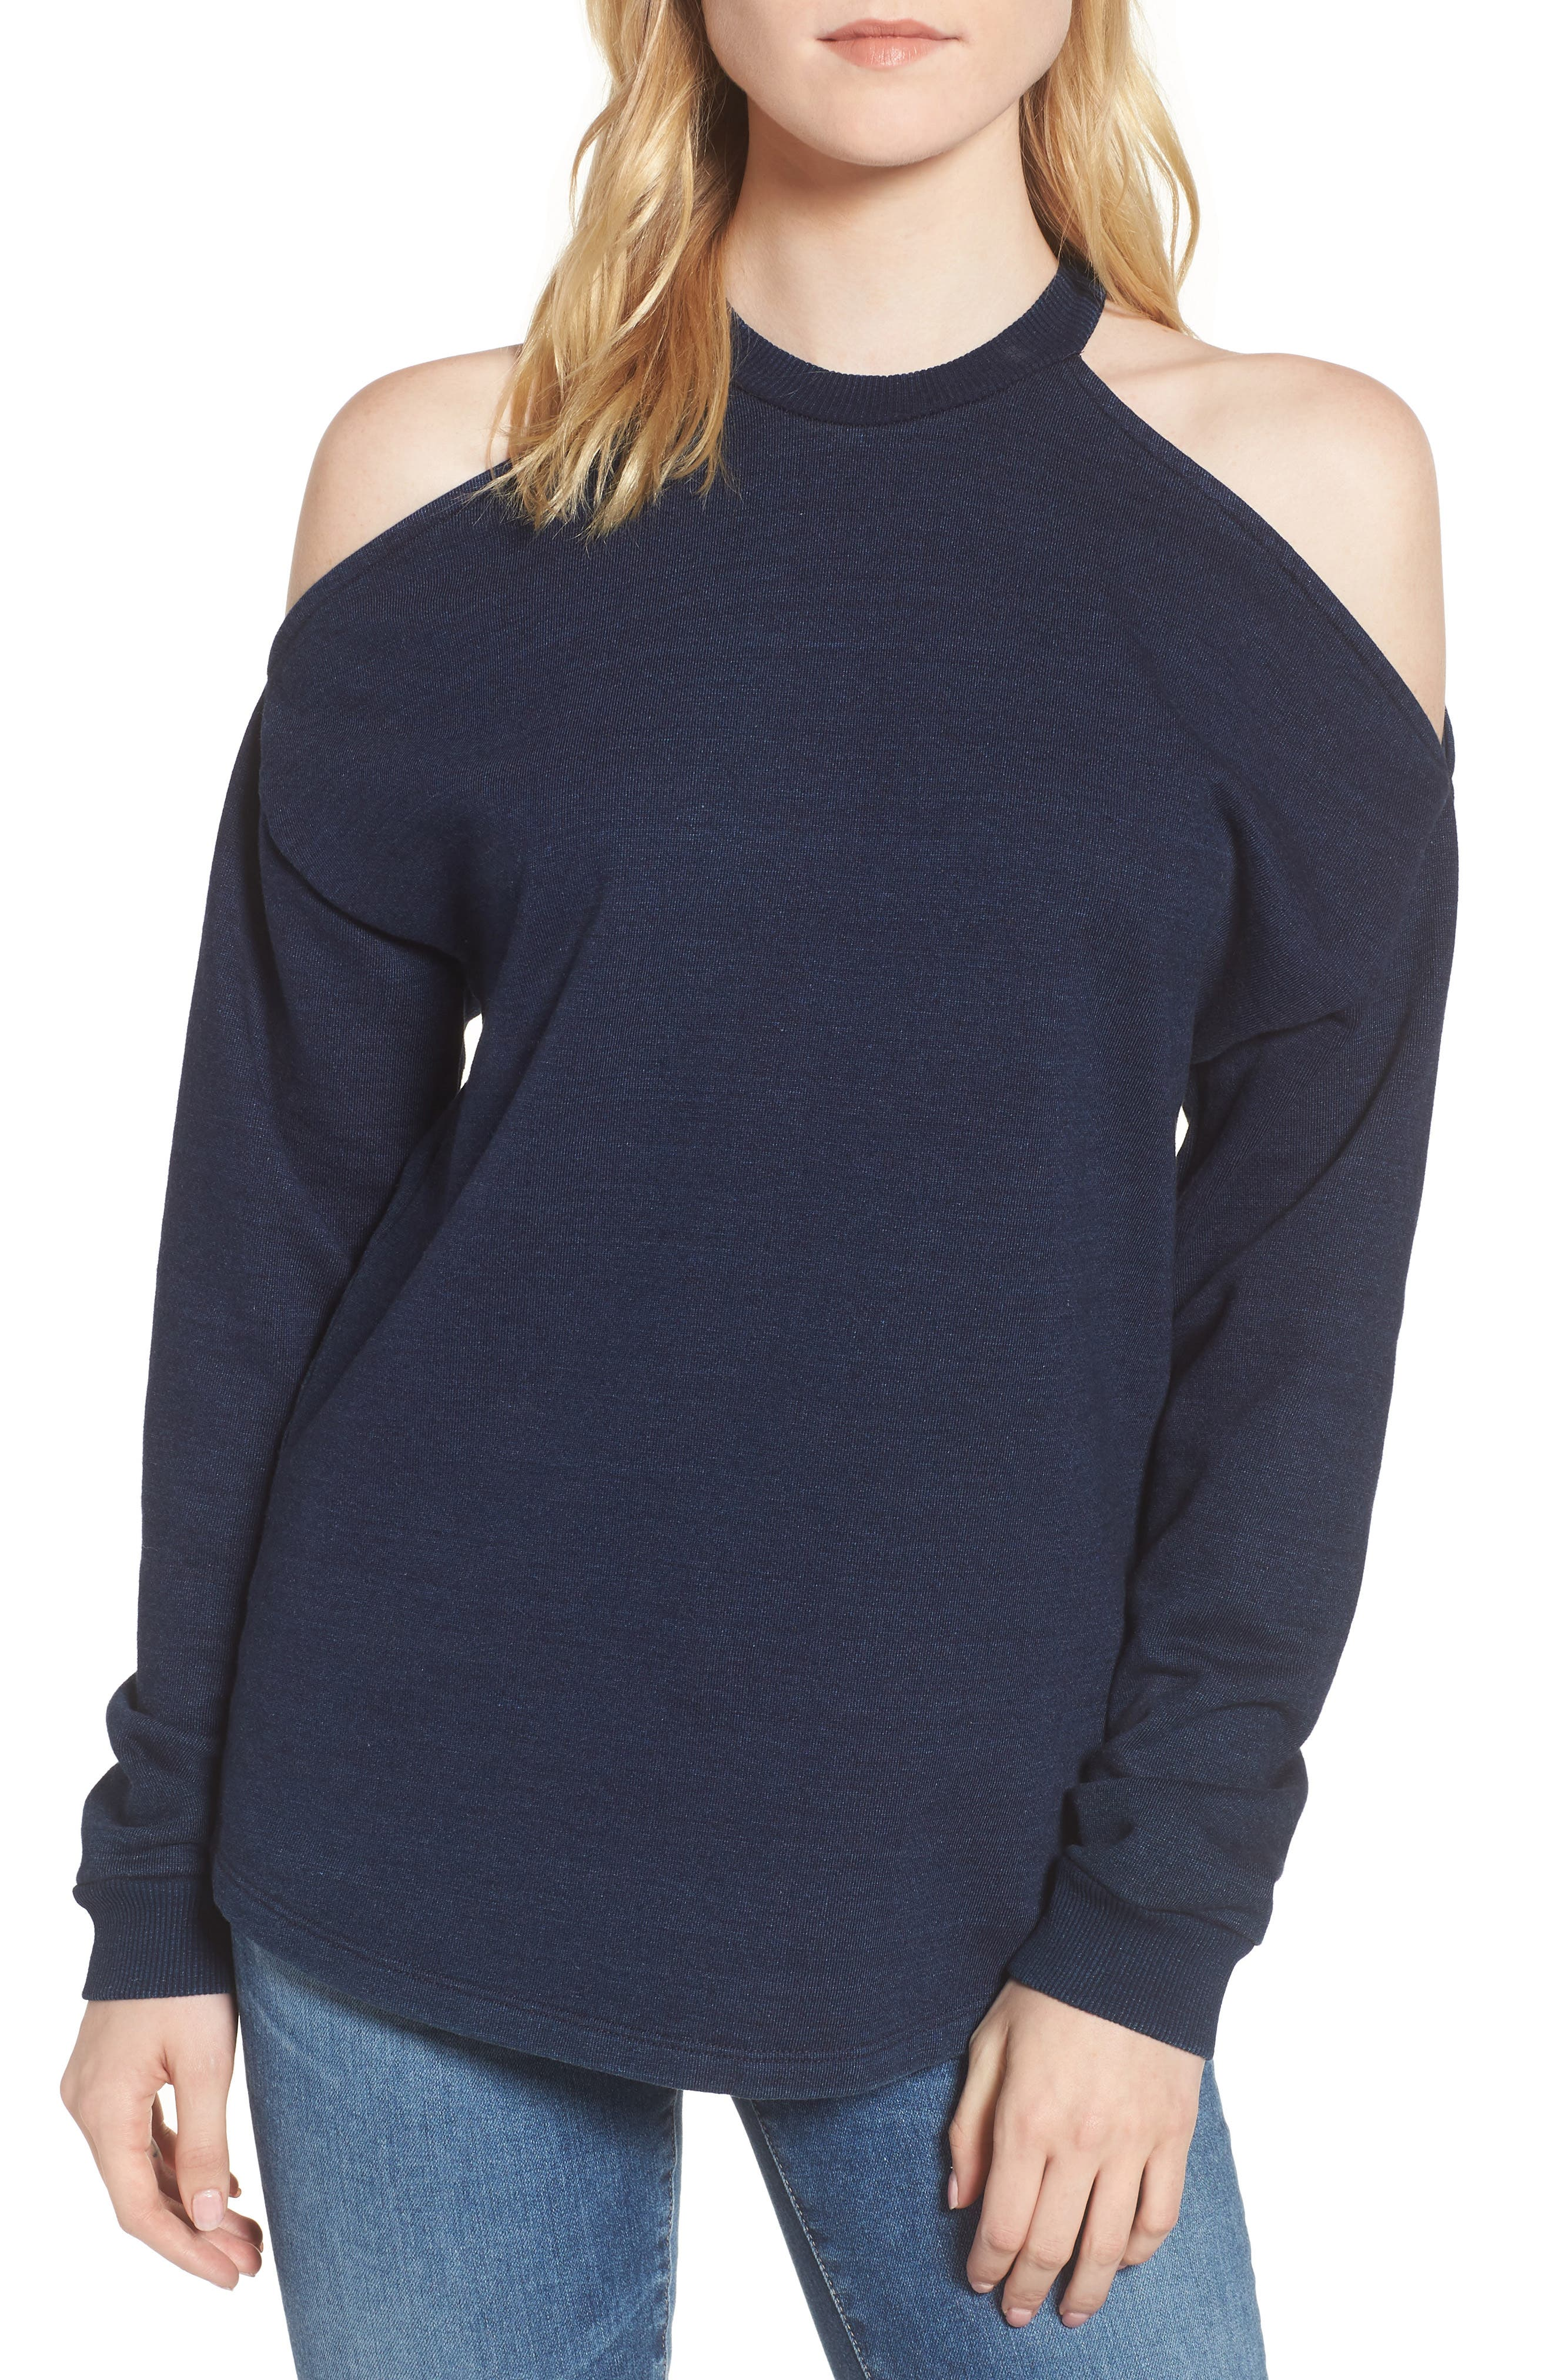 Gizi Cold Shoulder Sweatshirt,                             Main thumbnail 1, color,                             Blue River